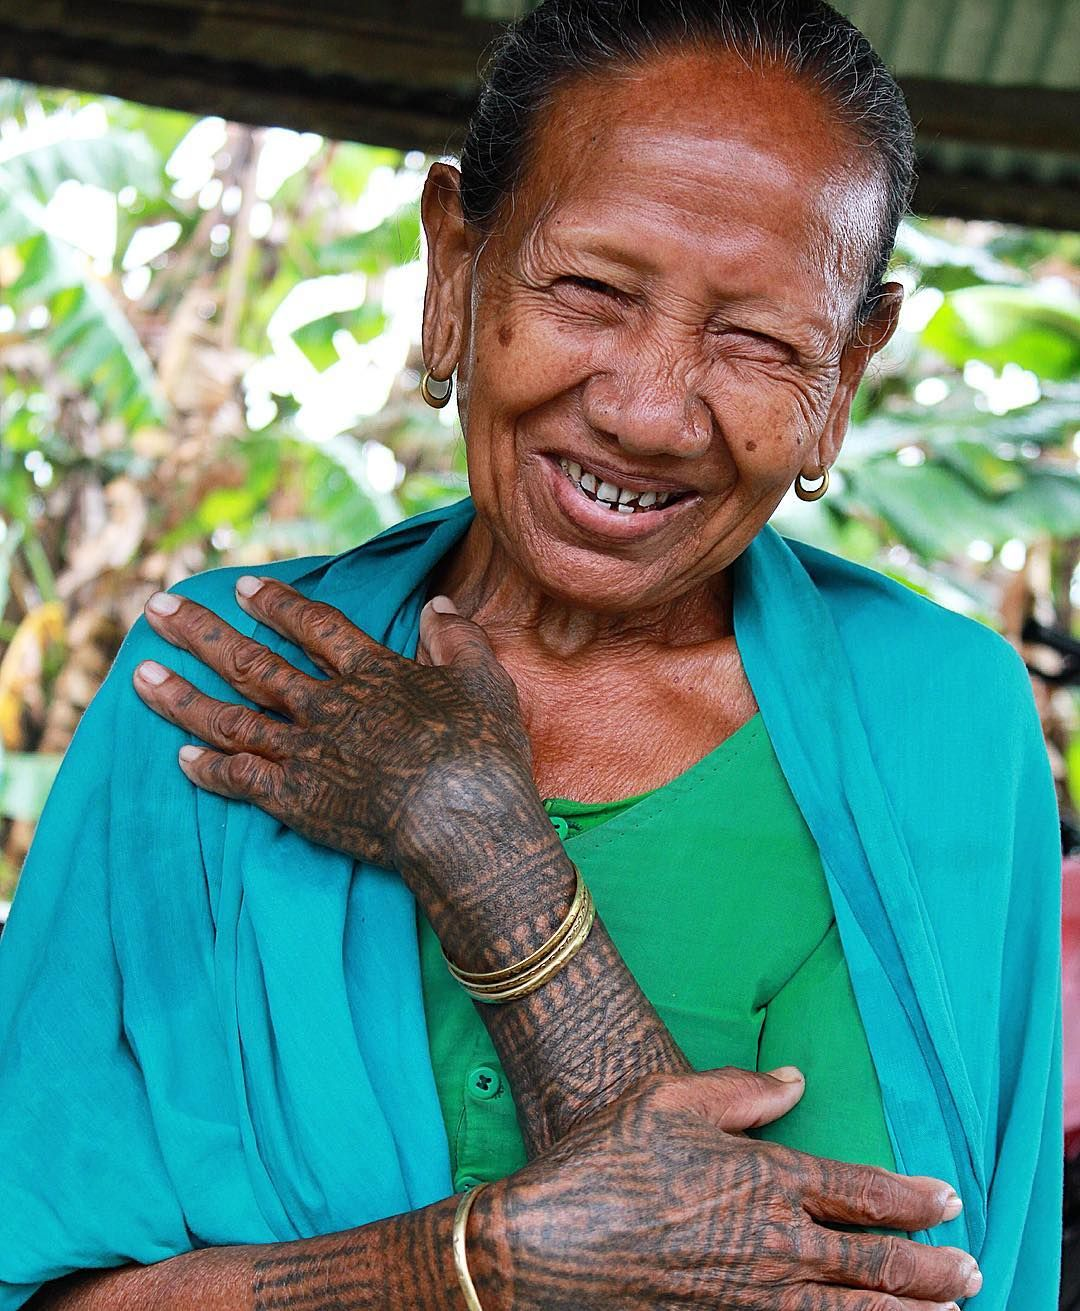 c30efb951 Tharu lady from southern Nepal, 2015. Taken by Travelin' Mick Tattoo ...